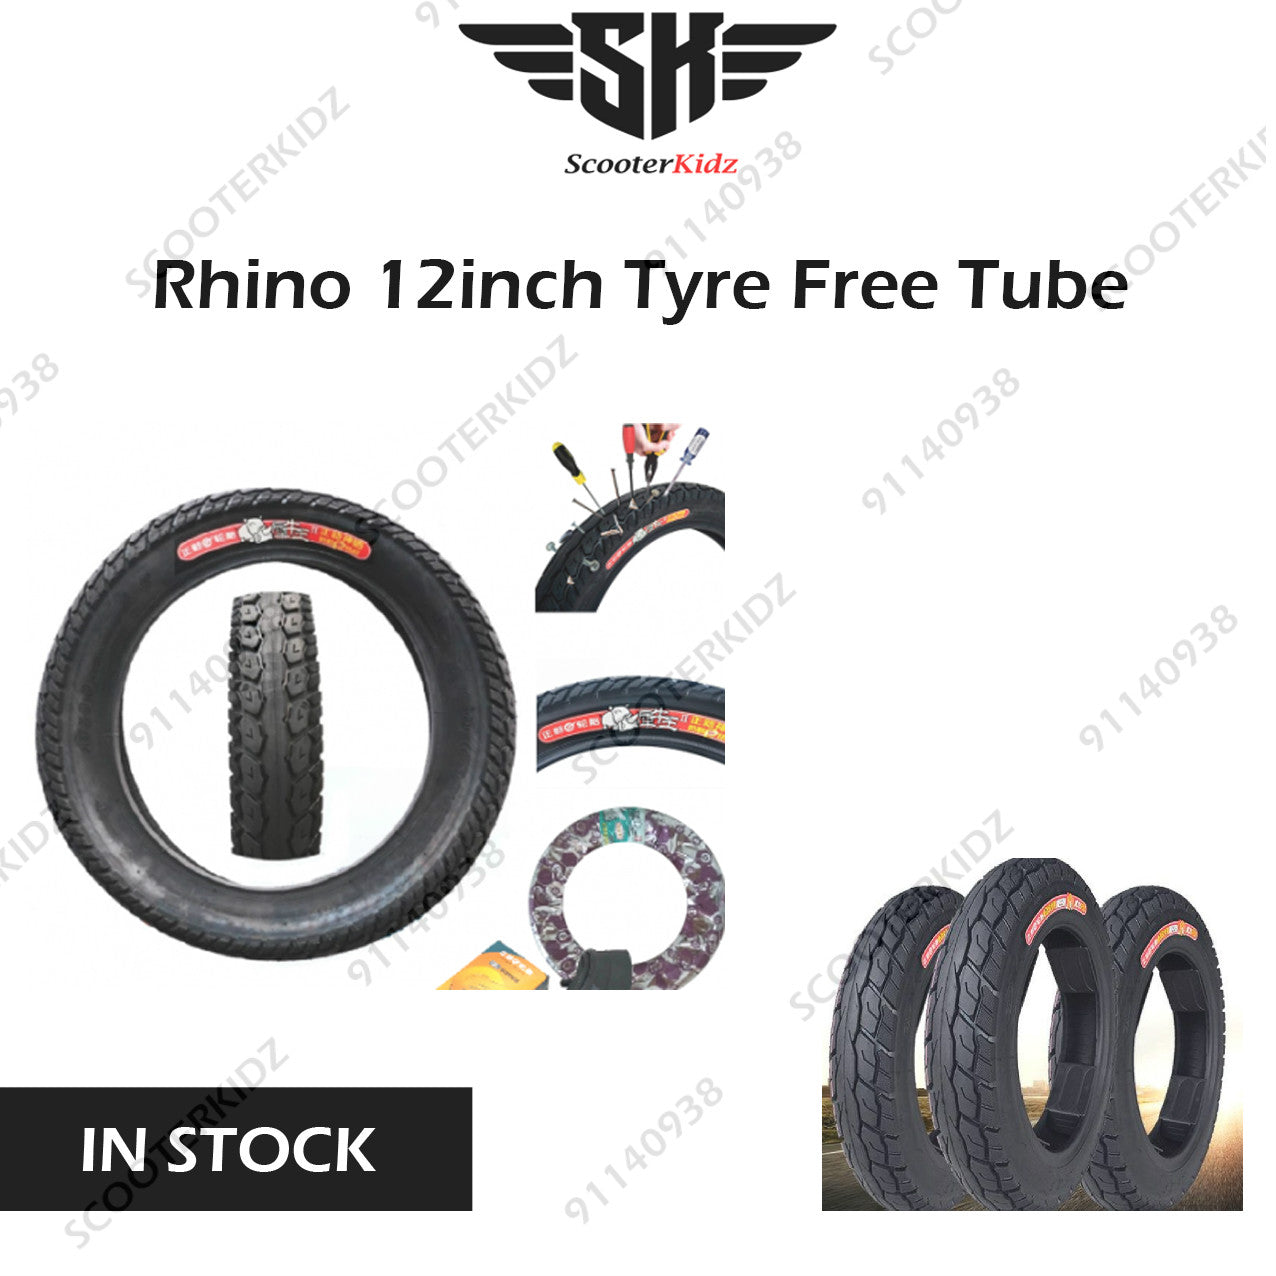 Rhino 12 inch Tire with FREE inner tube